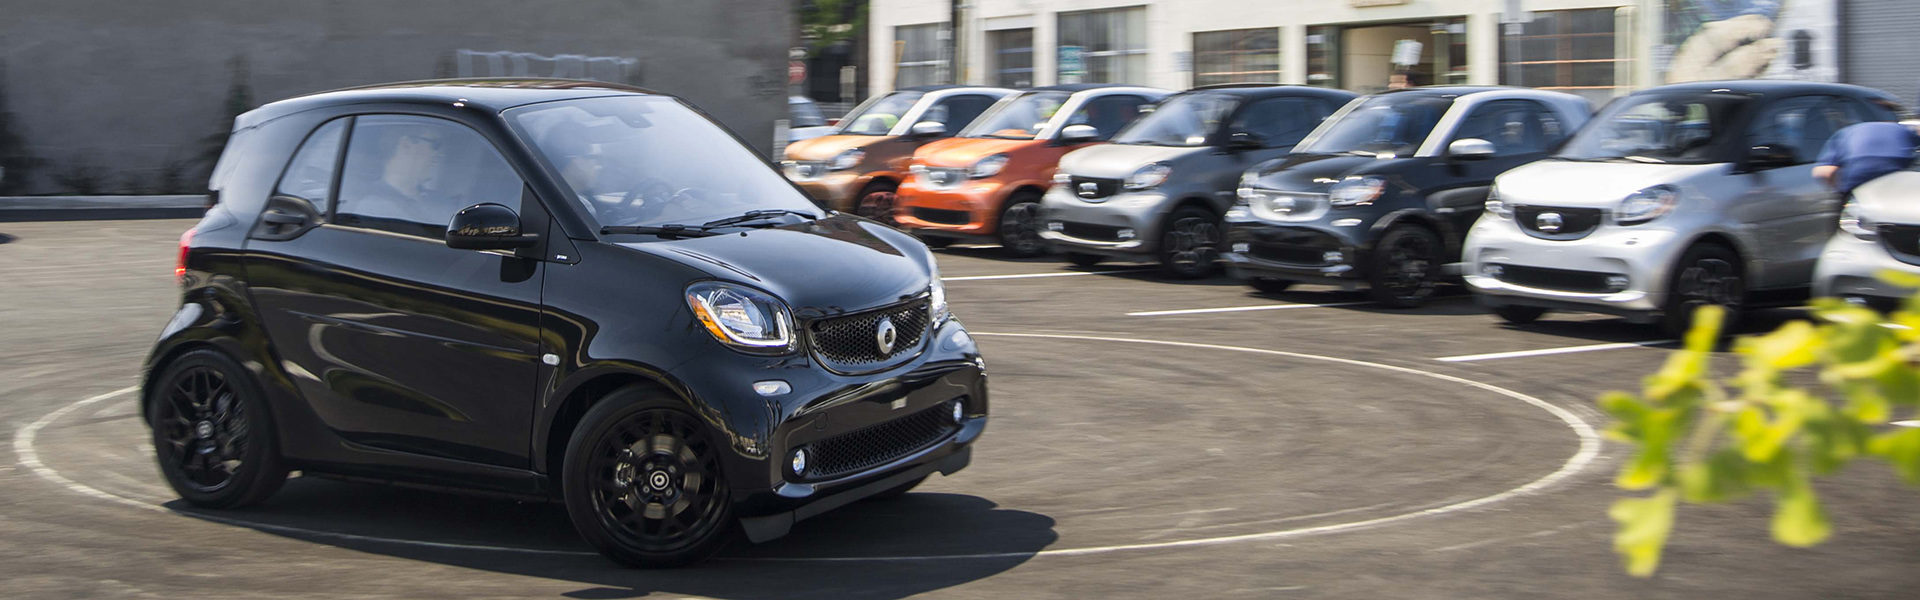 smart fortwo Press Trial Drive in Portland